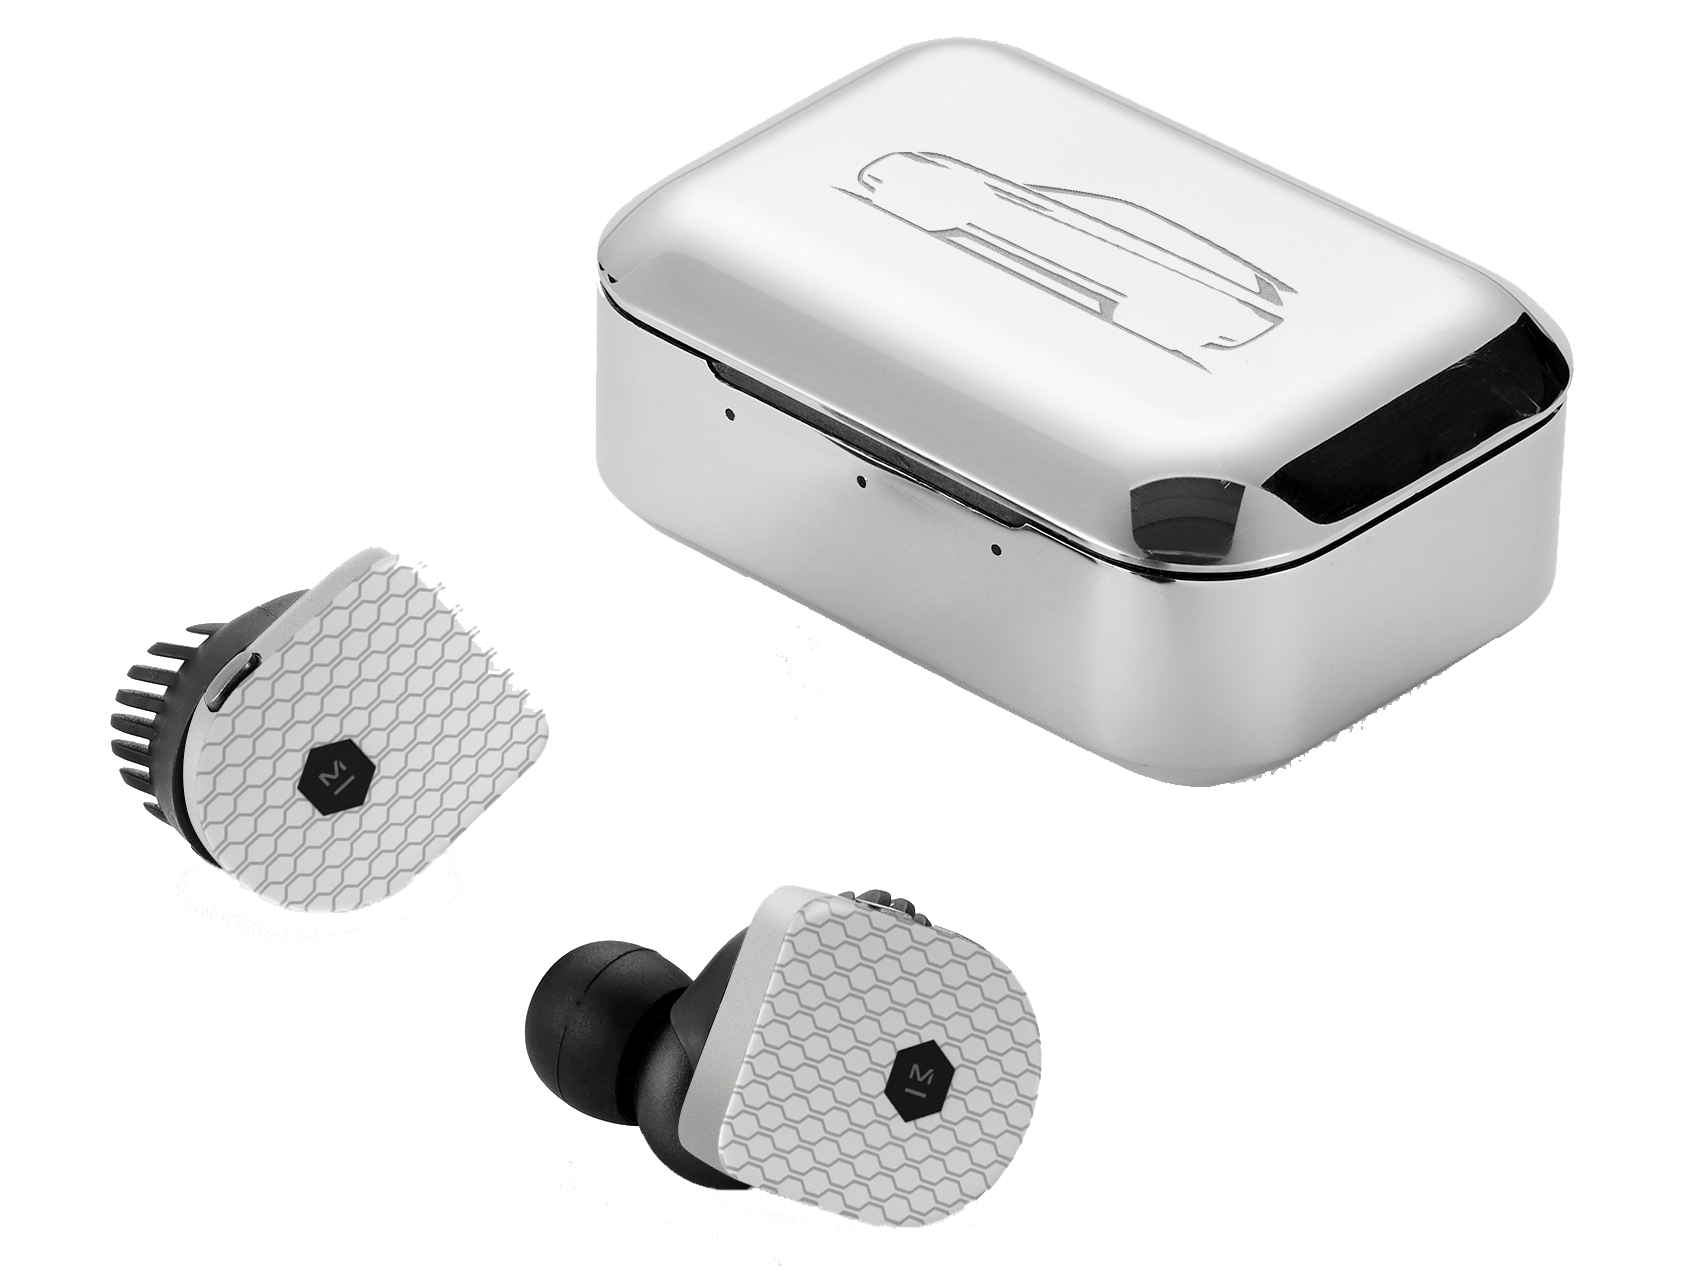 Master & Dynamic MW07 True Wireless Earphones